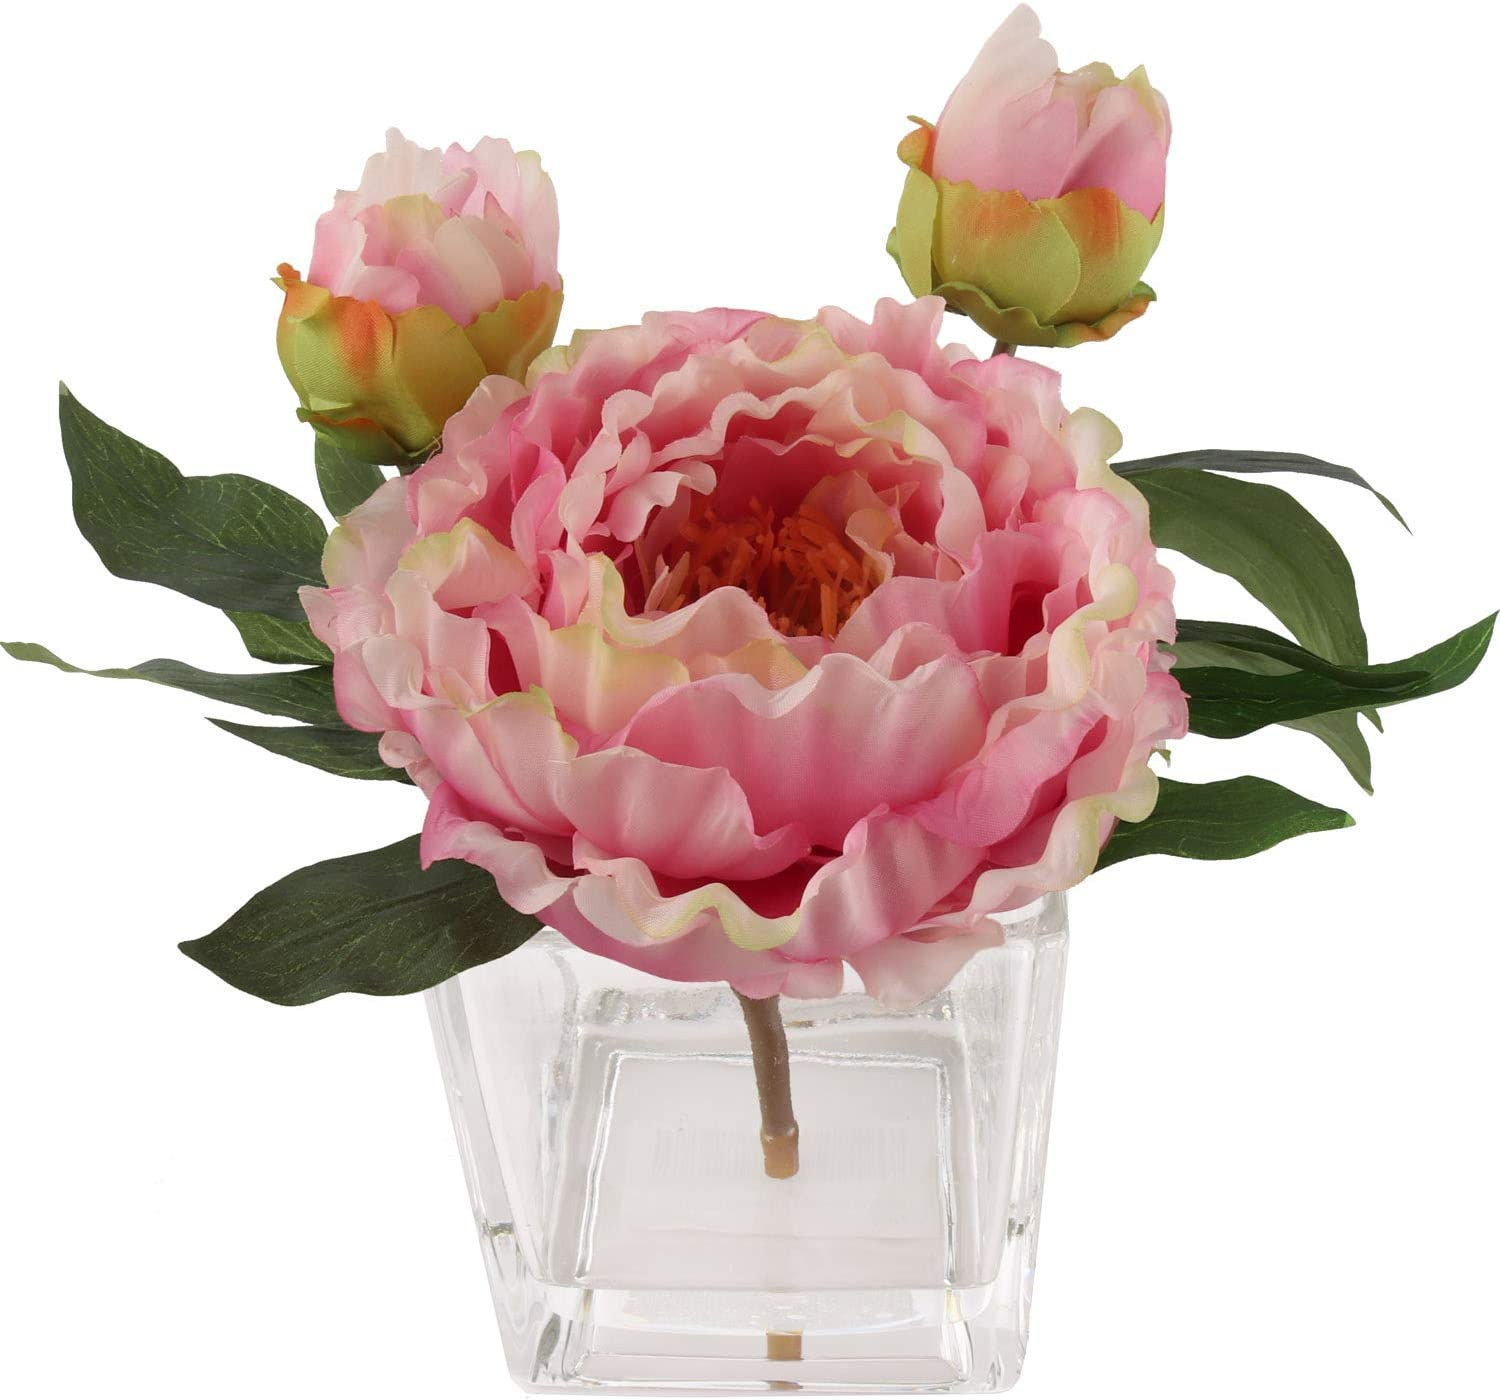 Handcrafted Artificial Tucson Mall Peony Silk latest Flower Vase Arrangement R in